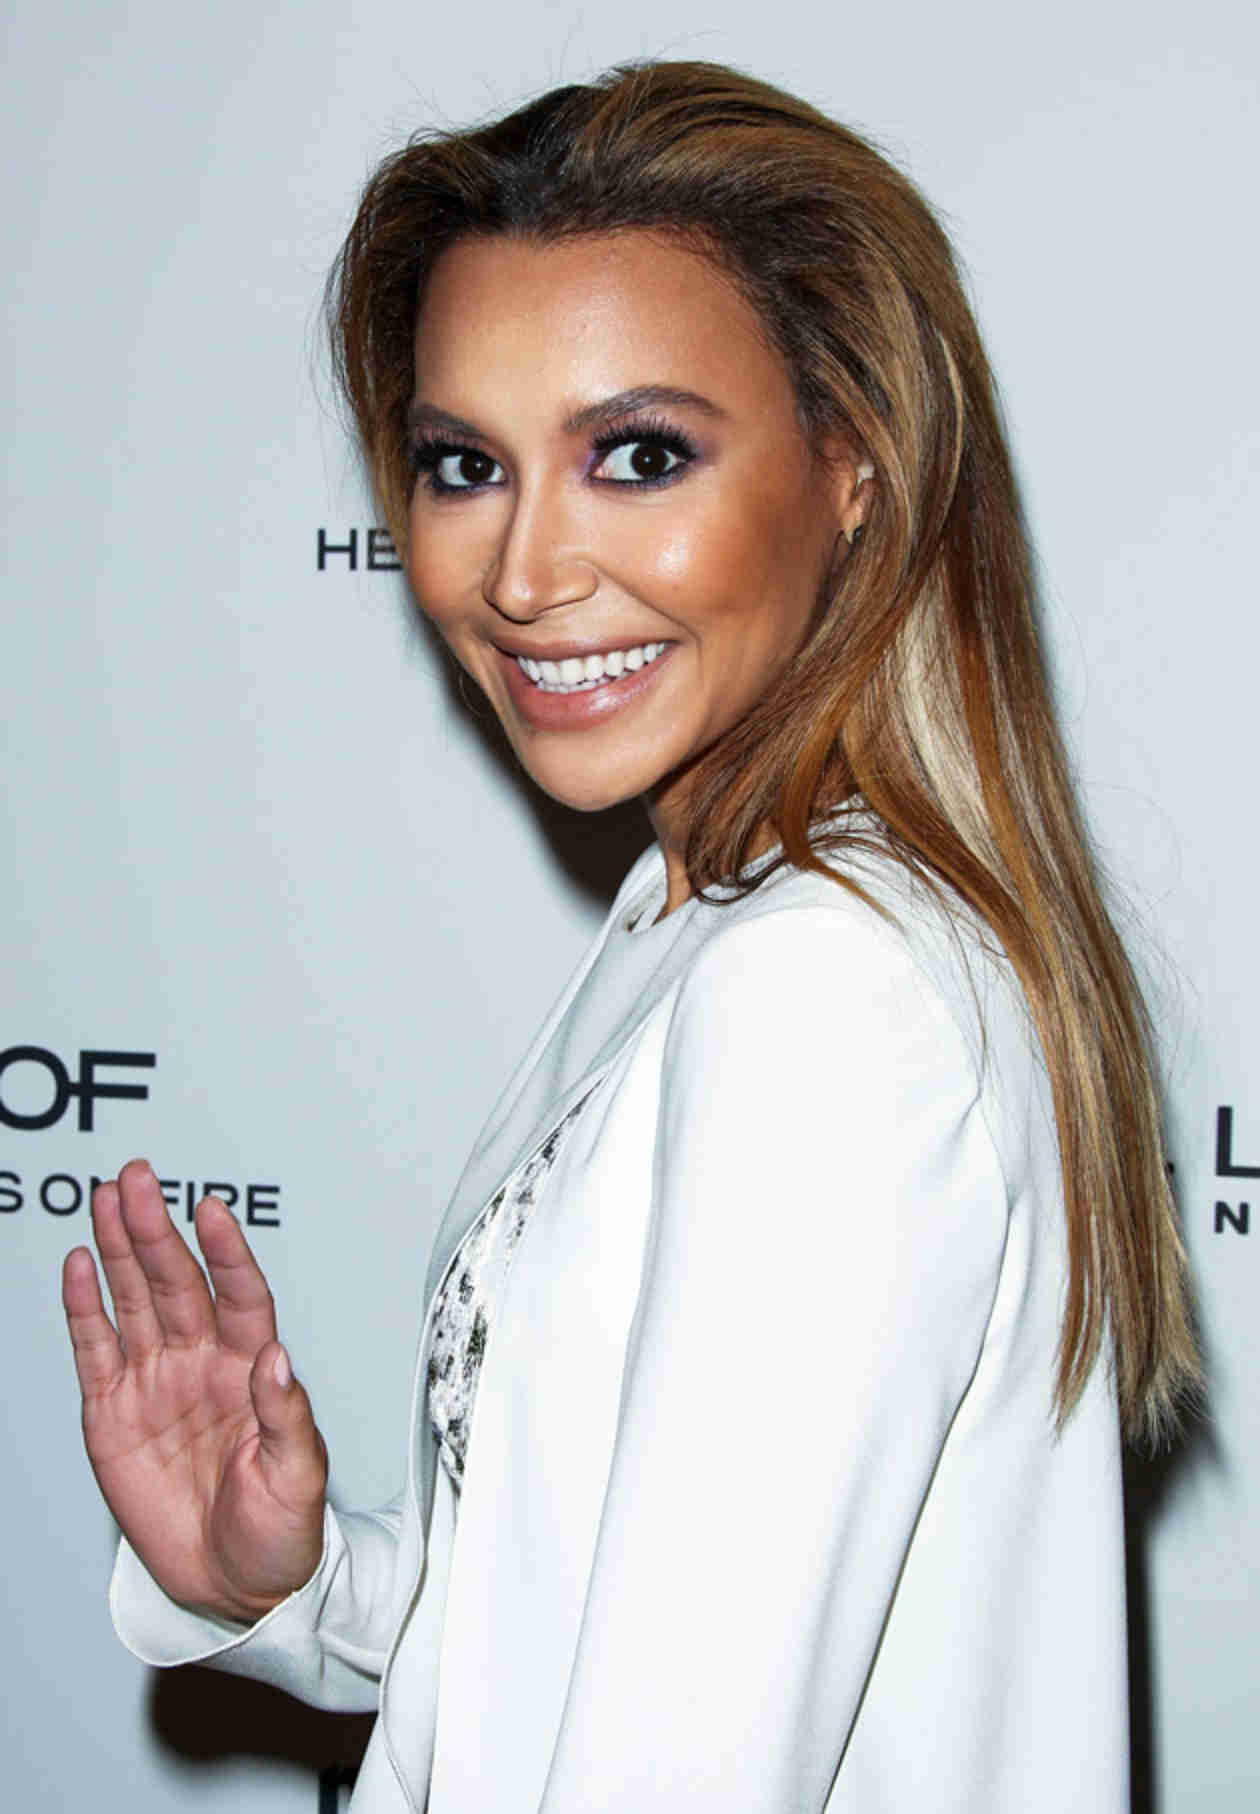 Naya Rivera Looks Happy Just One Day Before Calling Off Her Engagement